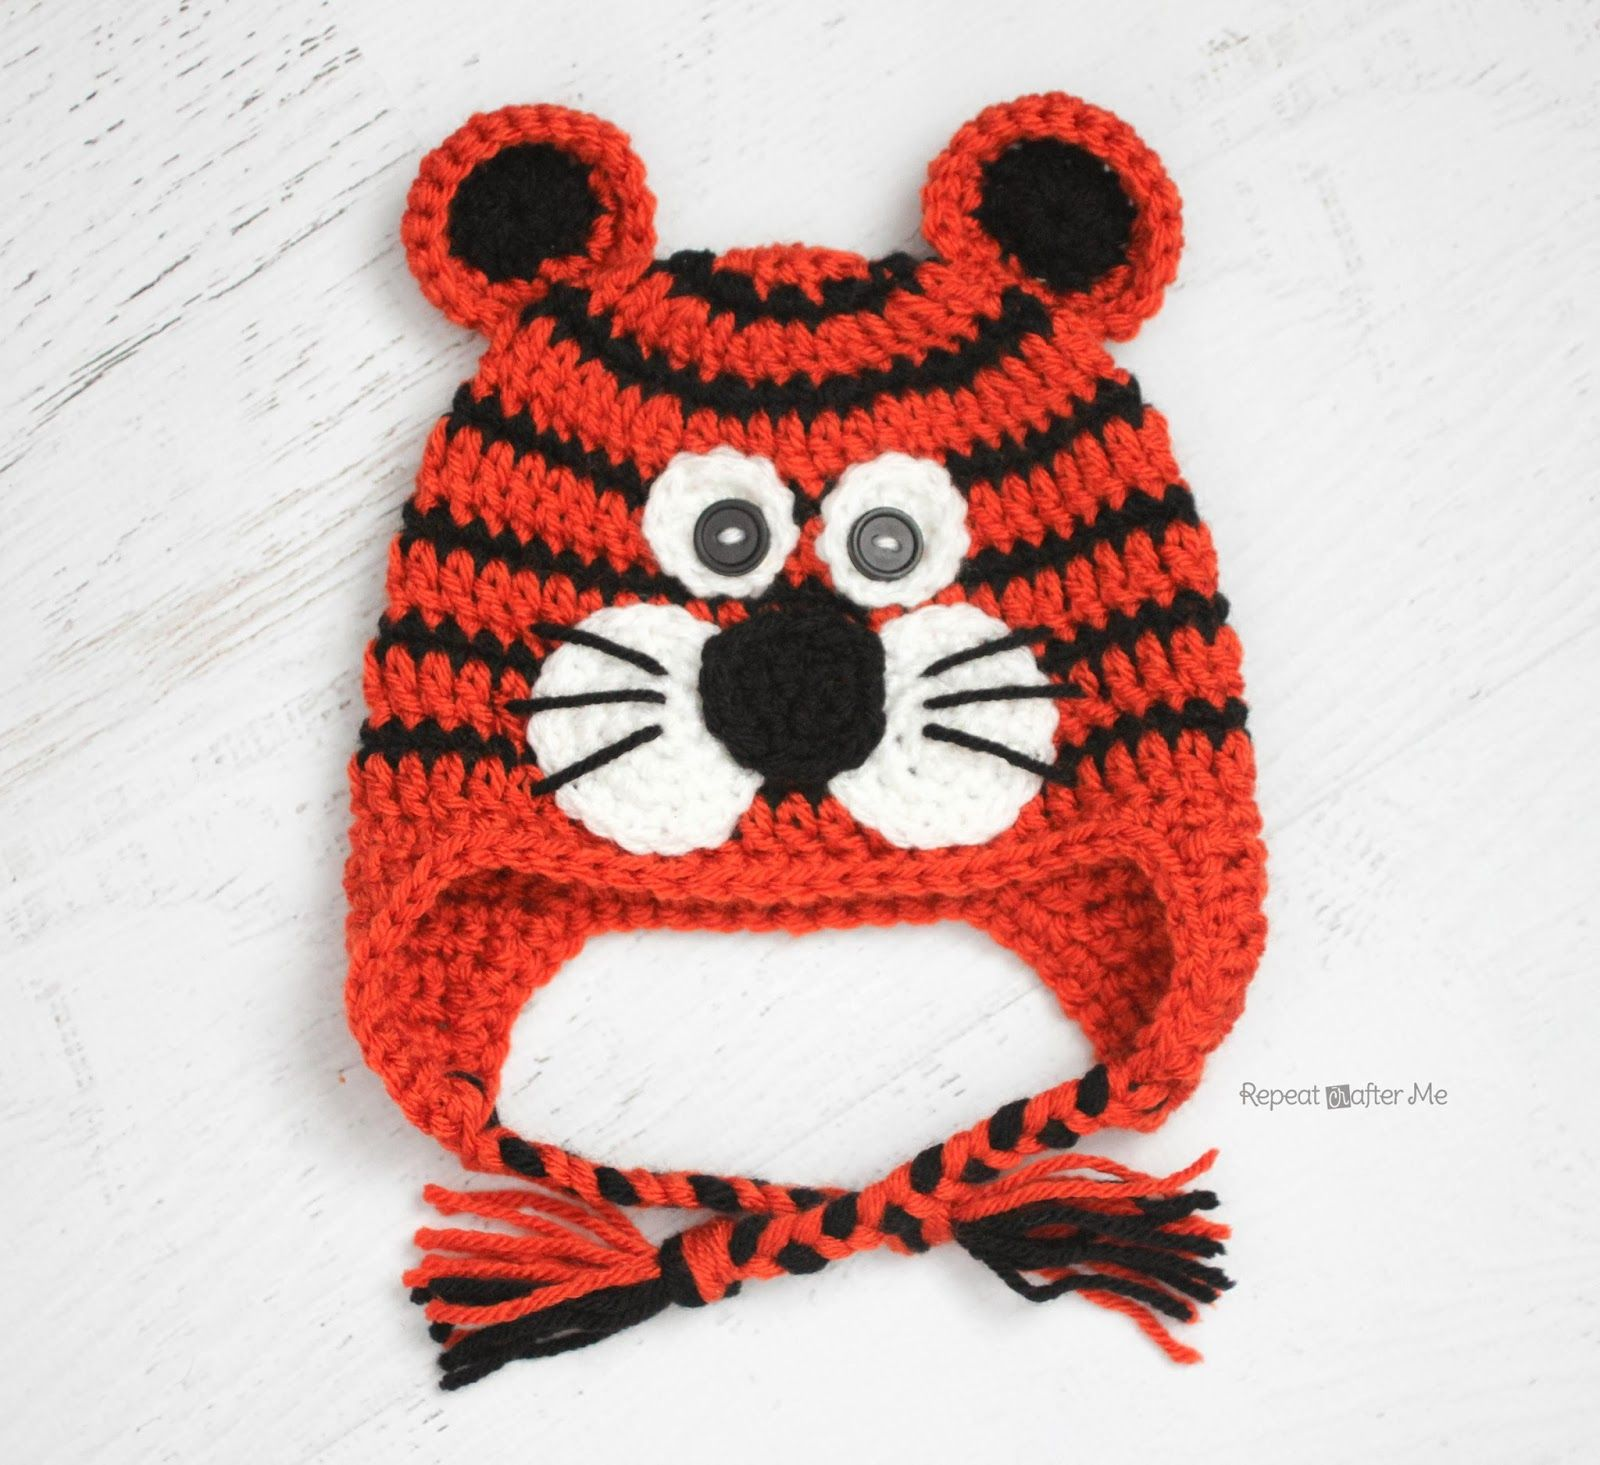 Repeat Crafter Me: Crochet Tiger Hat Pattern | crafts | Pinterest ...